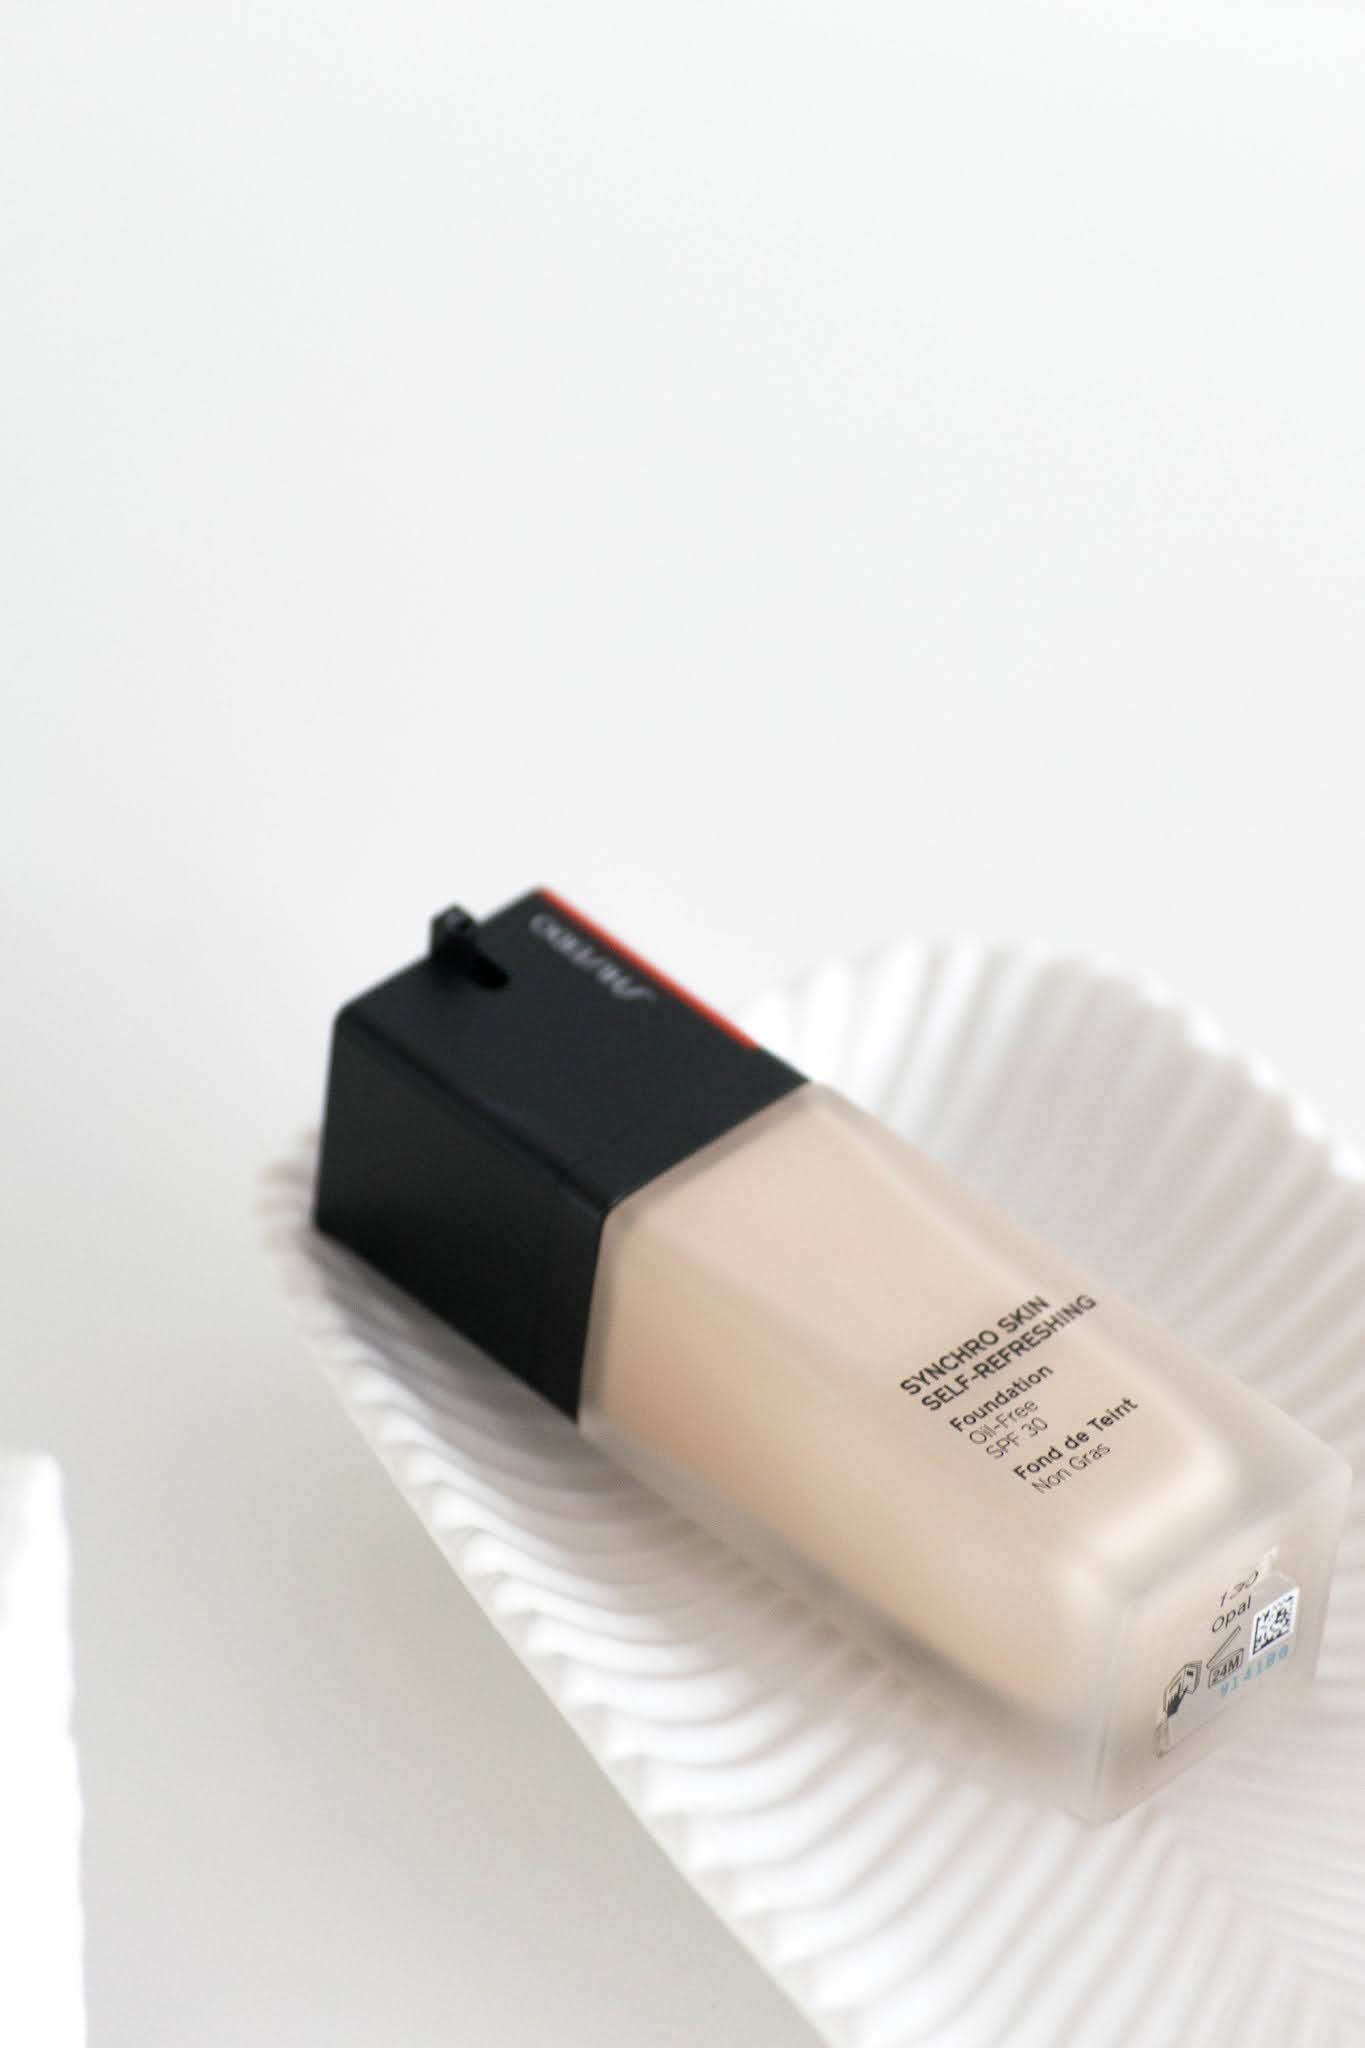 review base shiseido